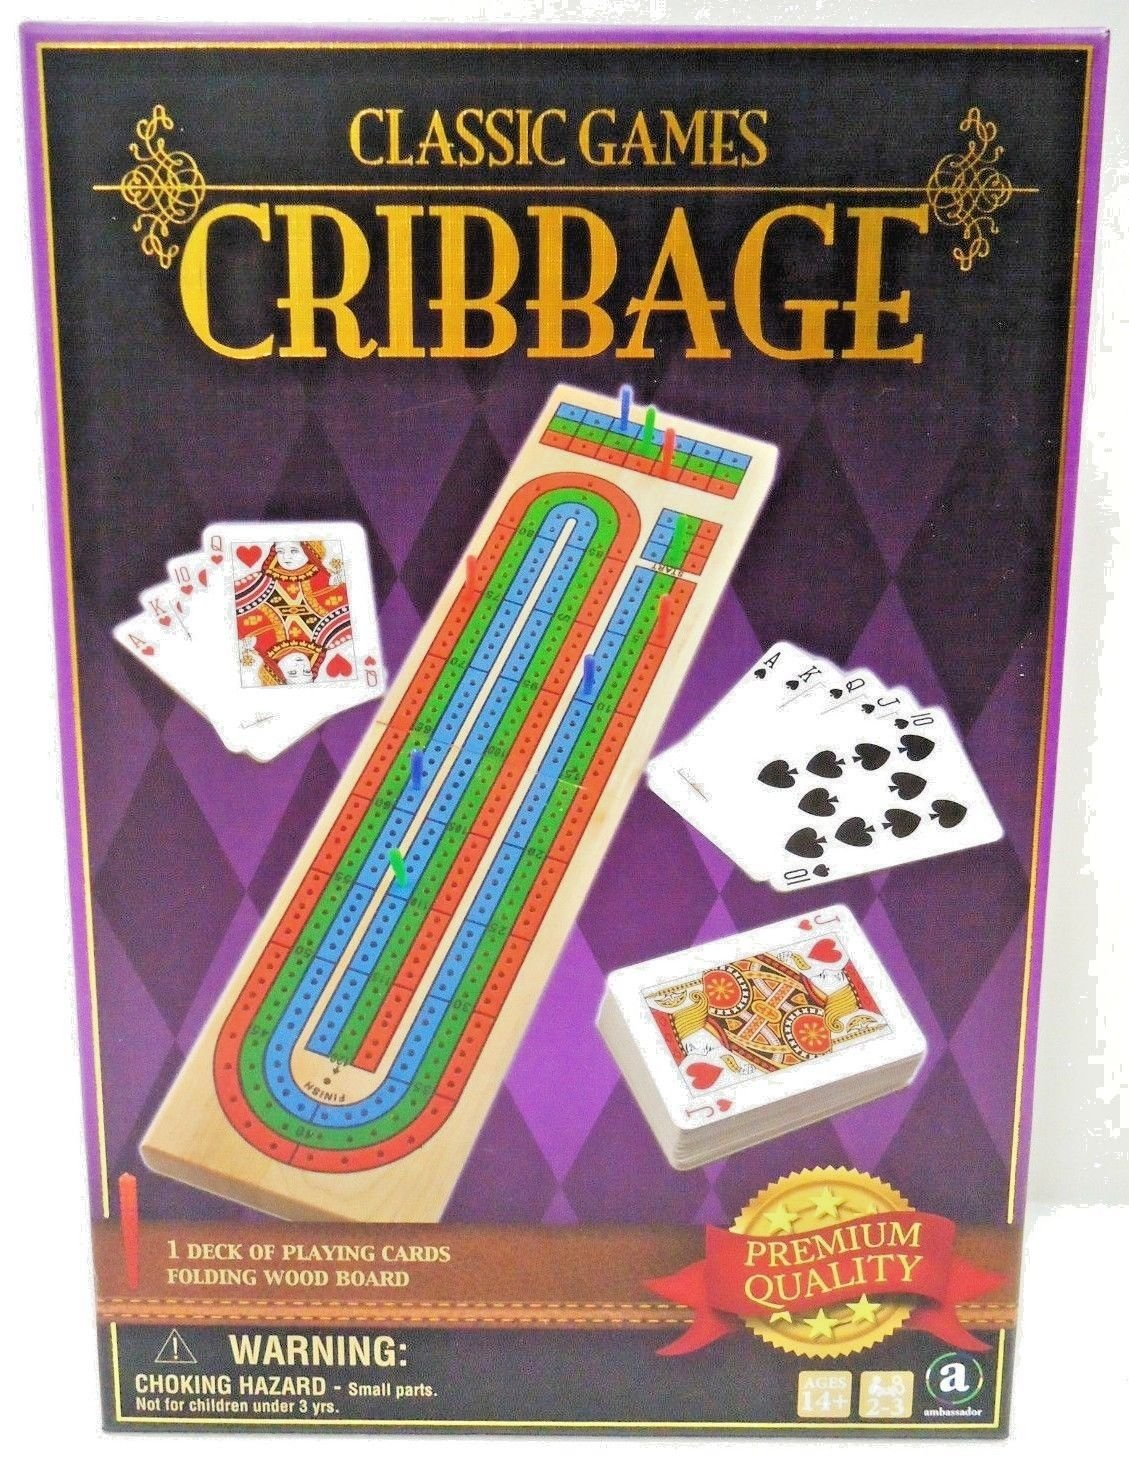 CLASSIC GAMES - CRIBBAGE - CARD - WOOD - BOARD - GAME - BRAND NEW - SEALED